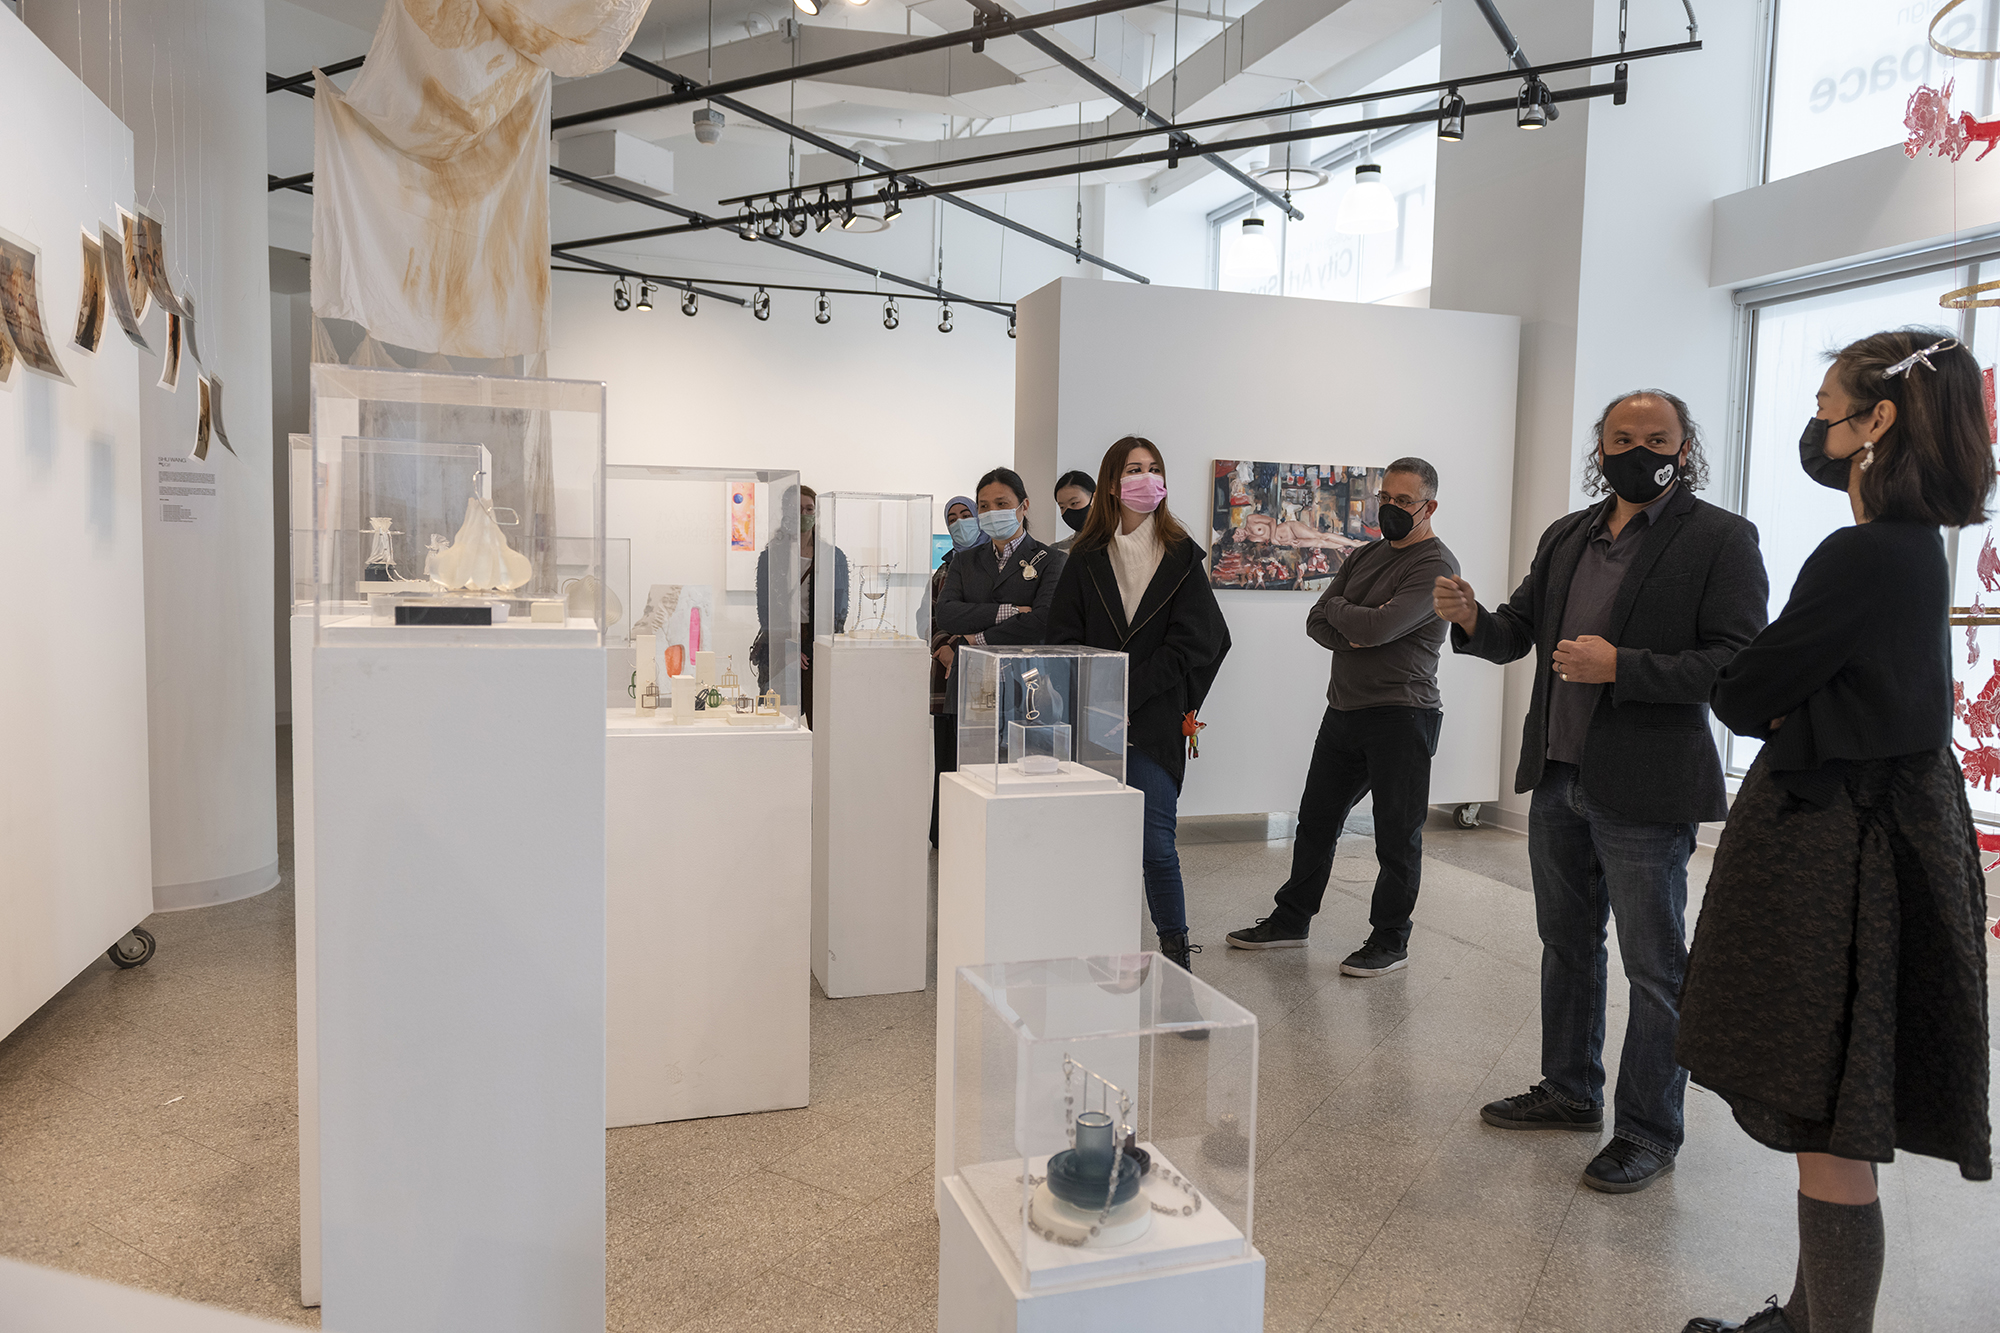 A group of people stand around an exhibit of metals and jewelry design.